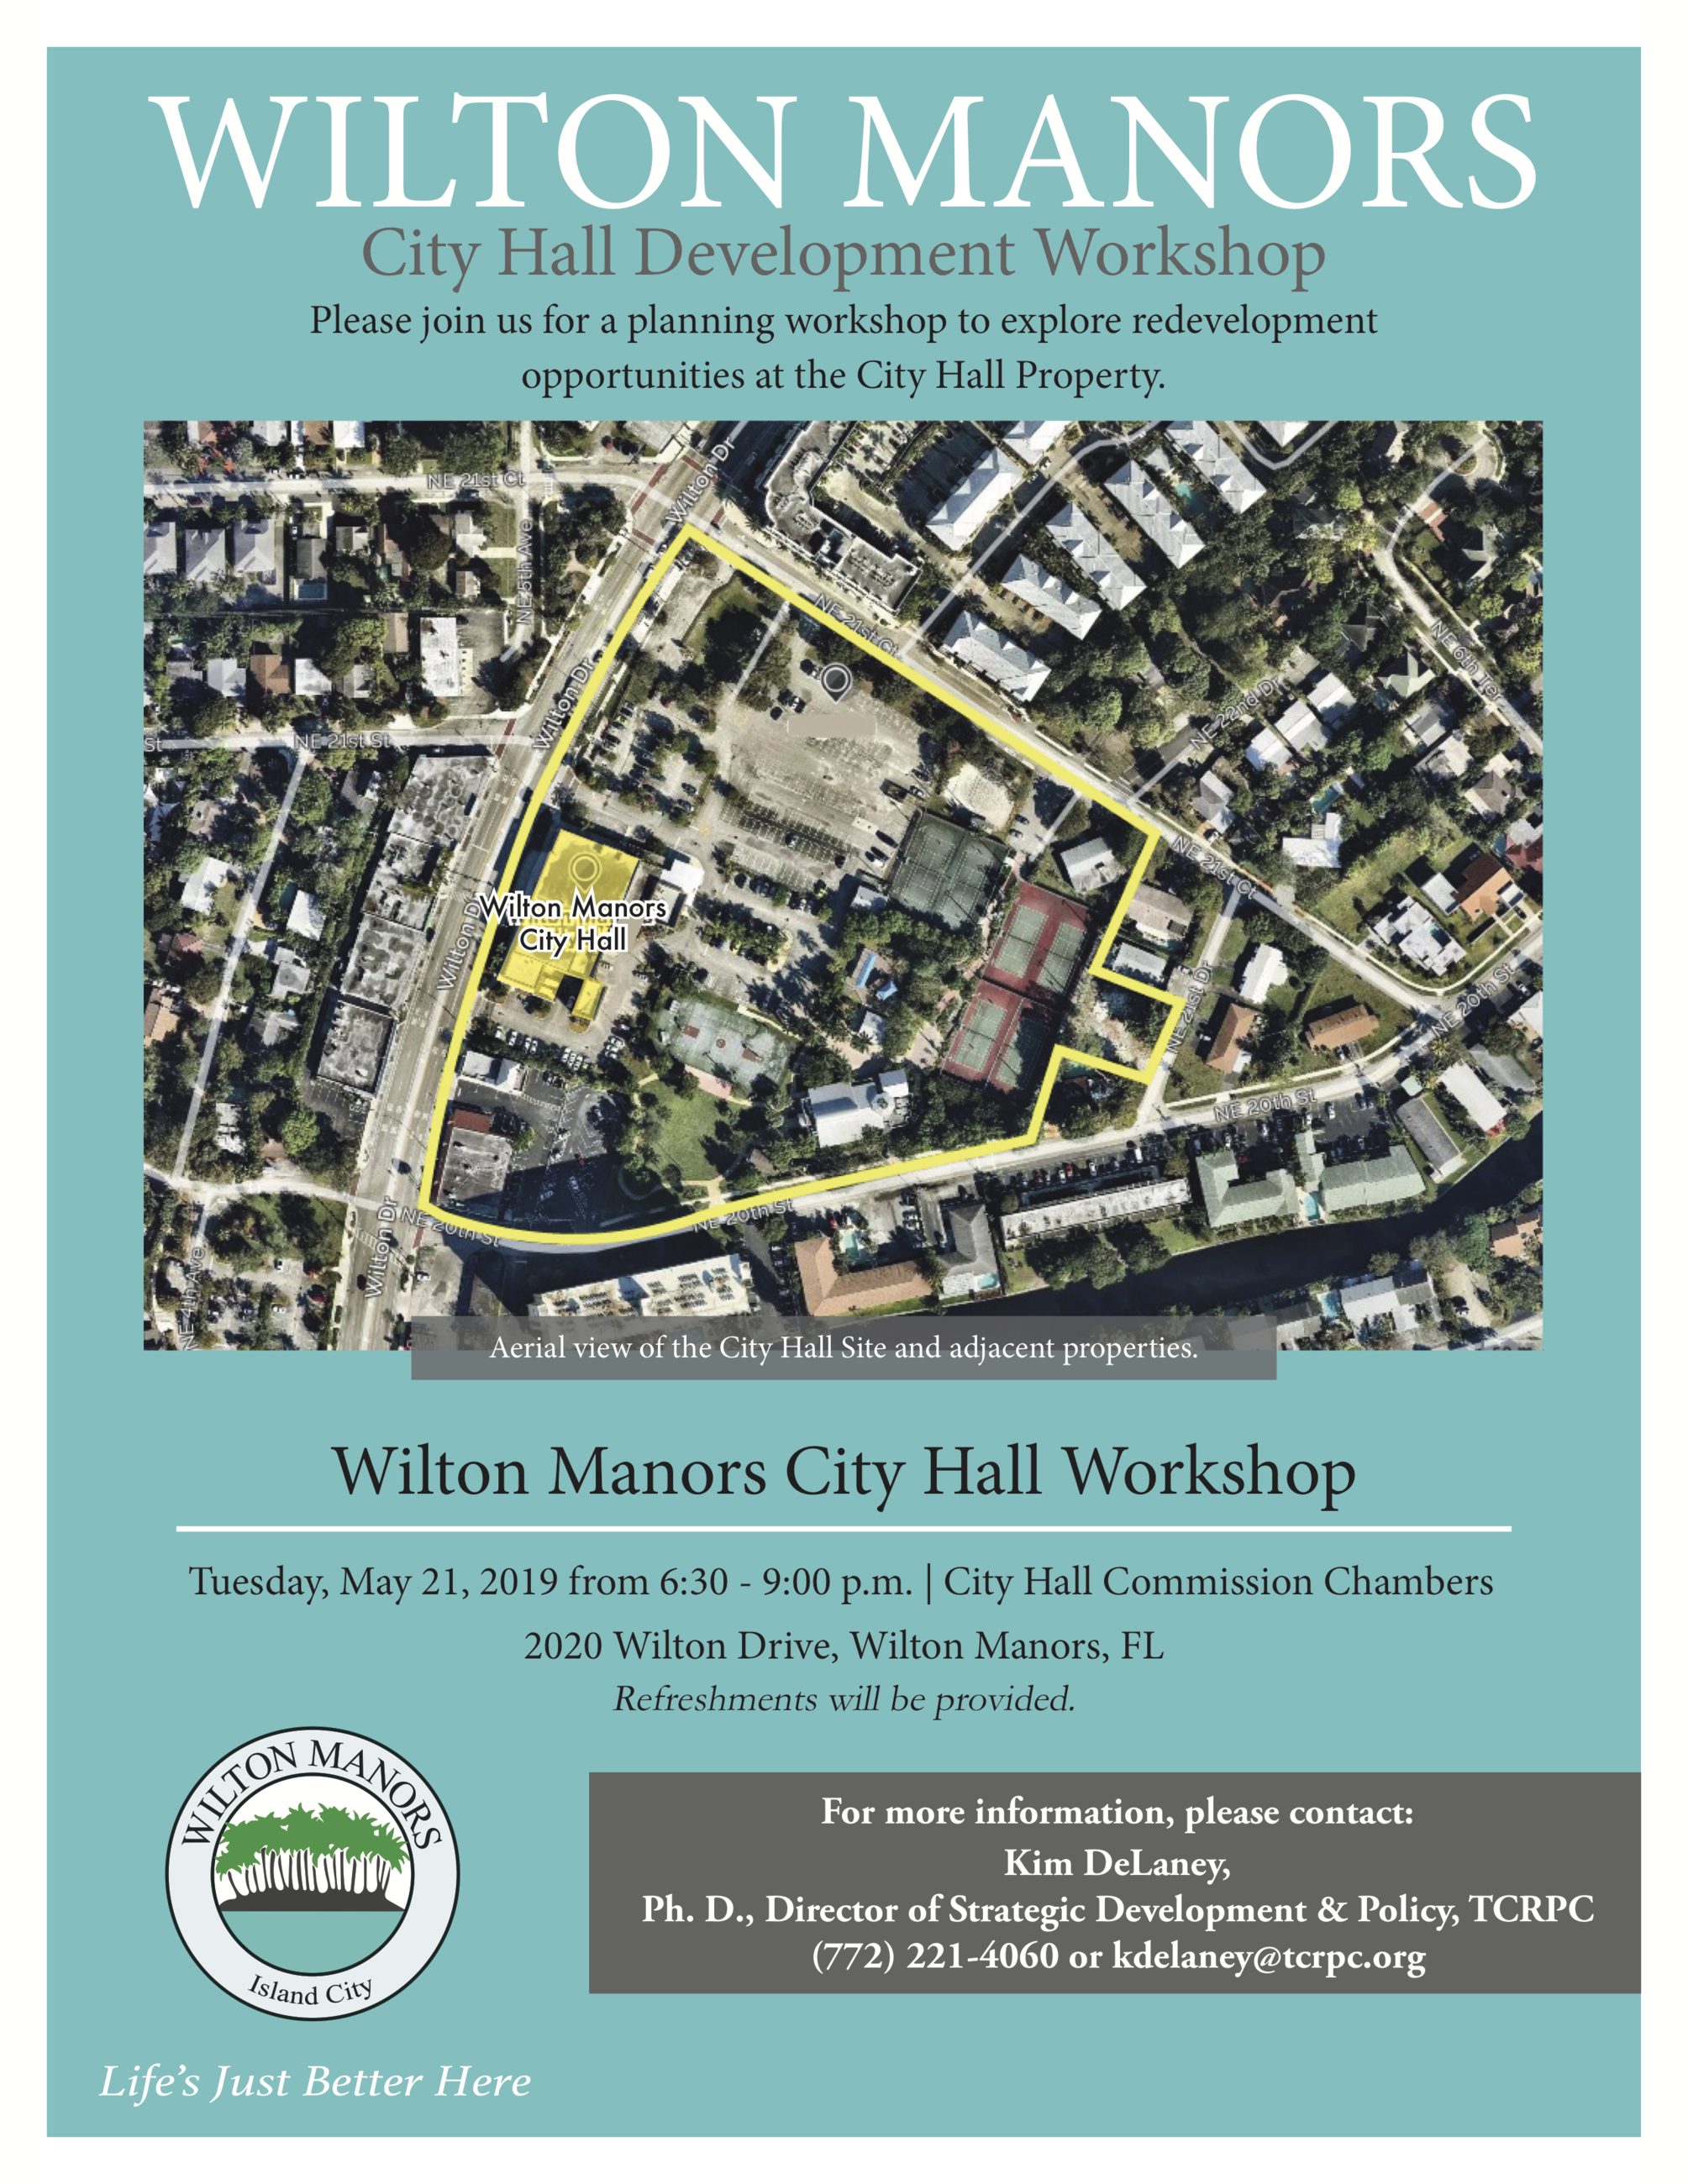 WM City Hall Development Workshop Flyer MAY 2019 FINAL DRAFT